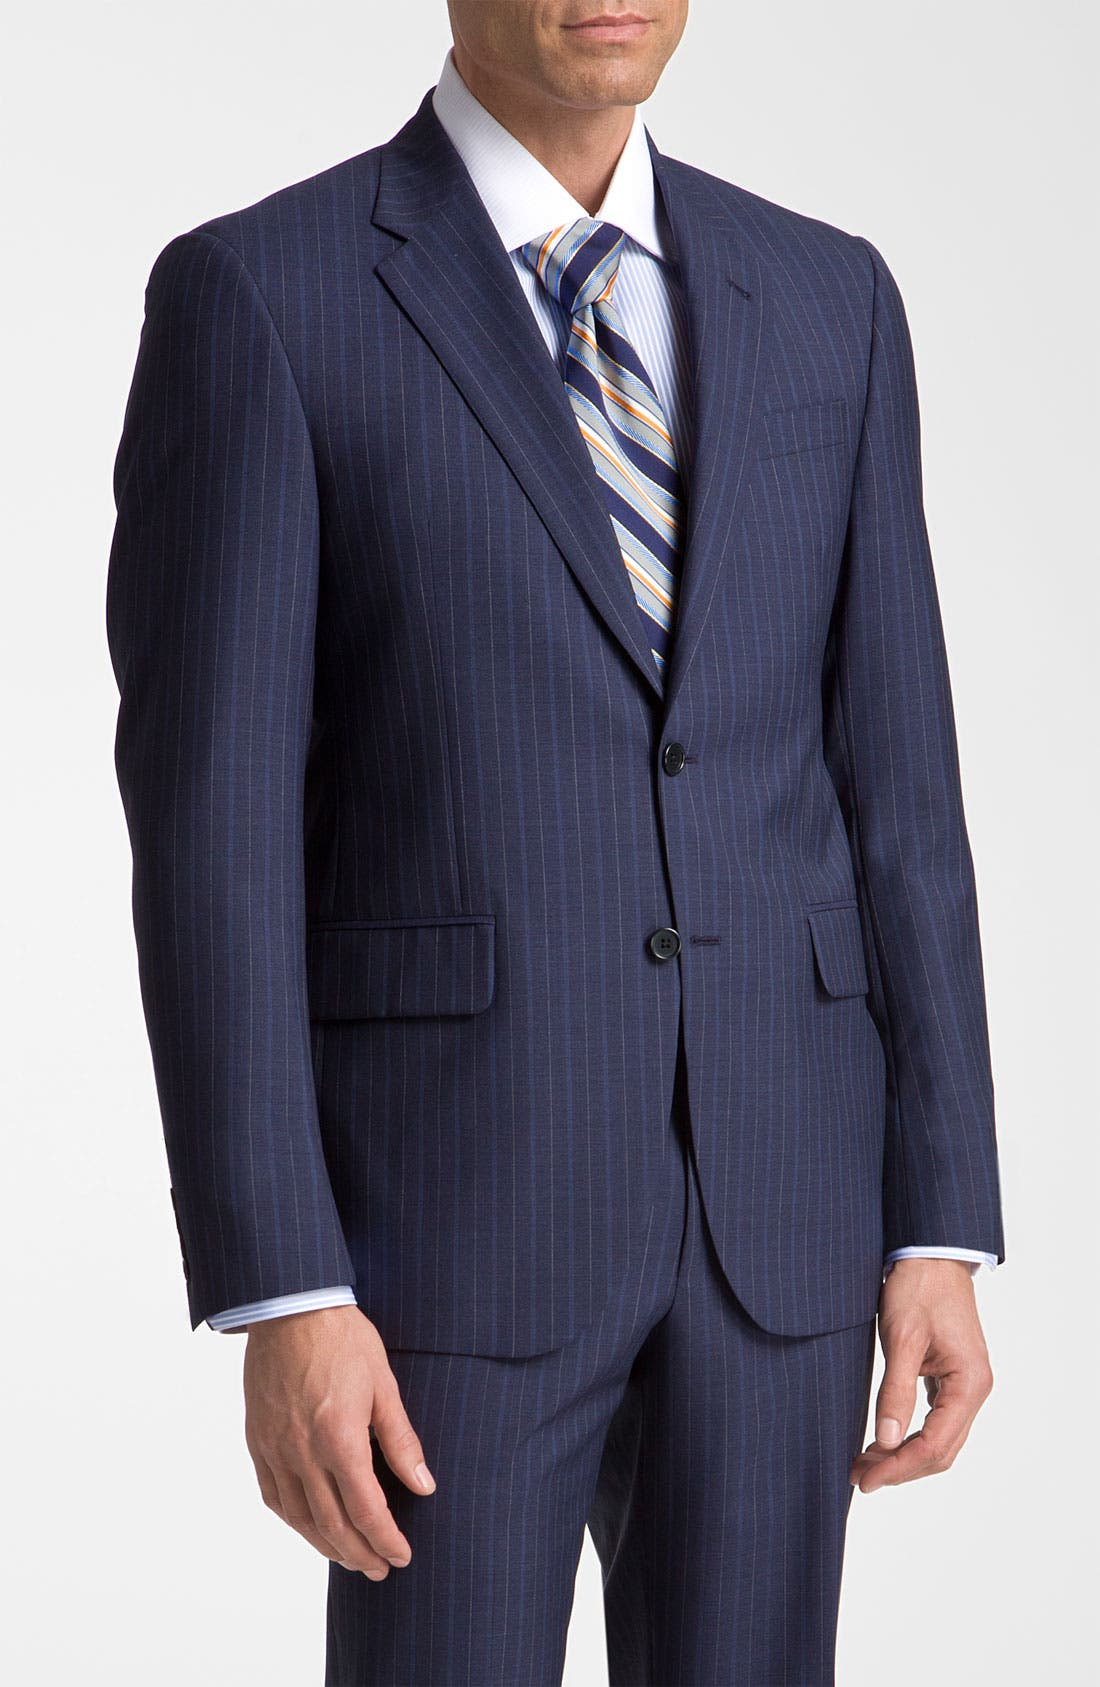 Alternate Image 1 Selected - Robert Talbott Navy Pinstripe Wool Suit